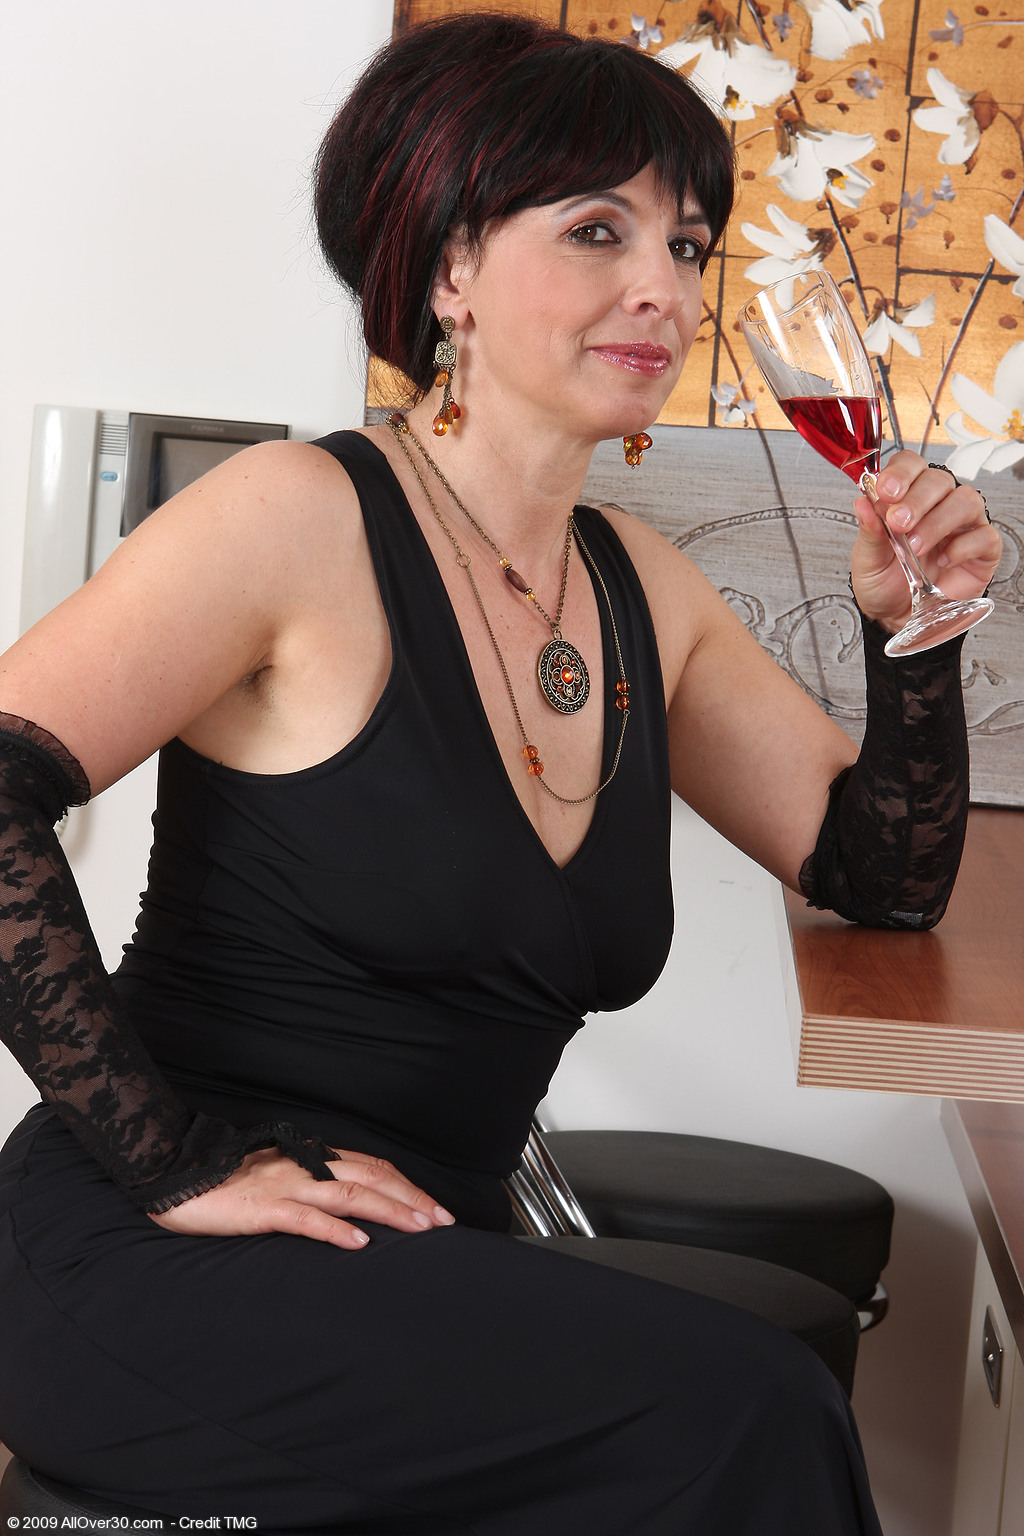 49 year old juliette - exclusive milf pictures from allover30